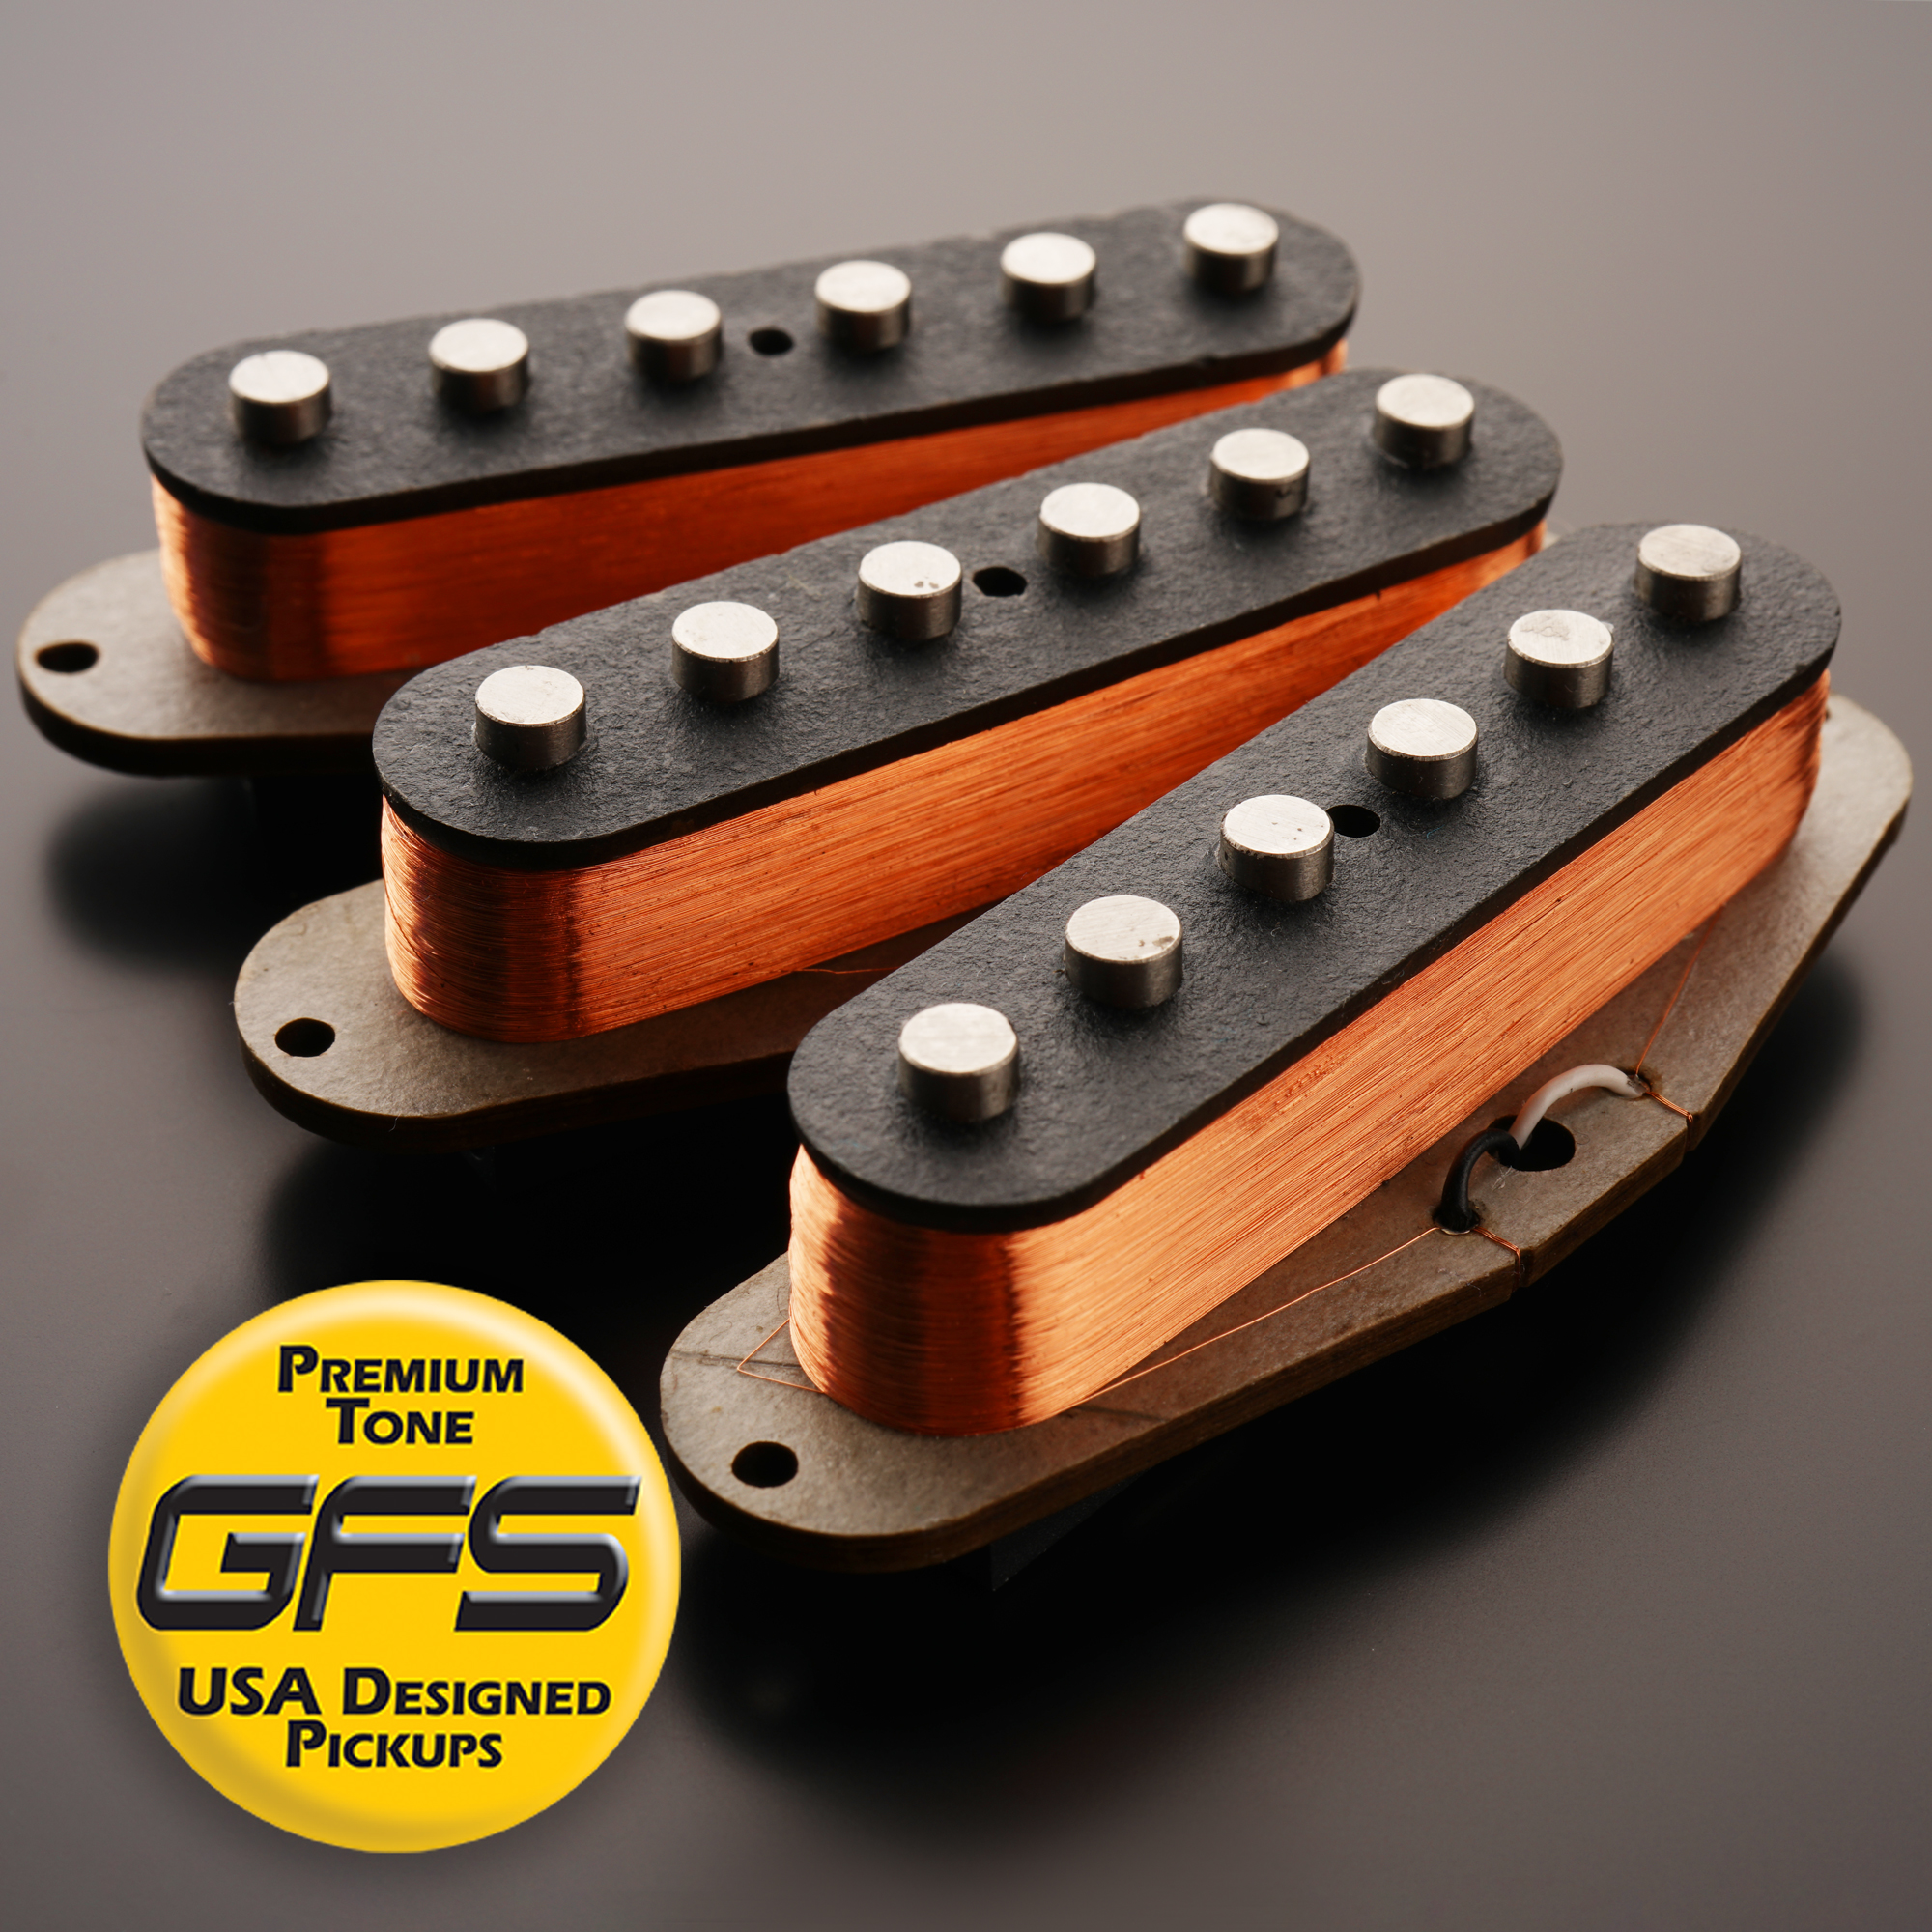 60's-70's Grey Bottom Non Stagger, Fits Strat® - More Power